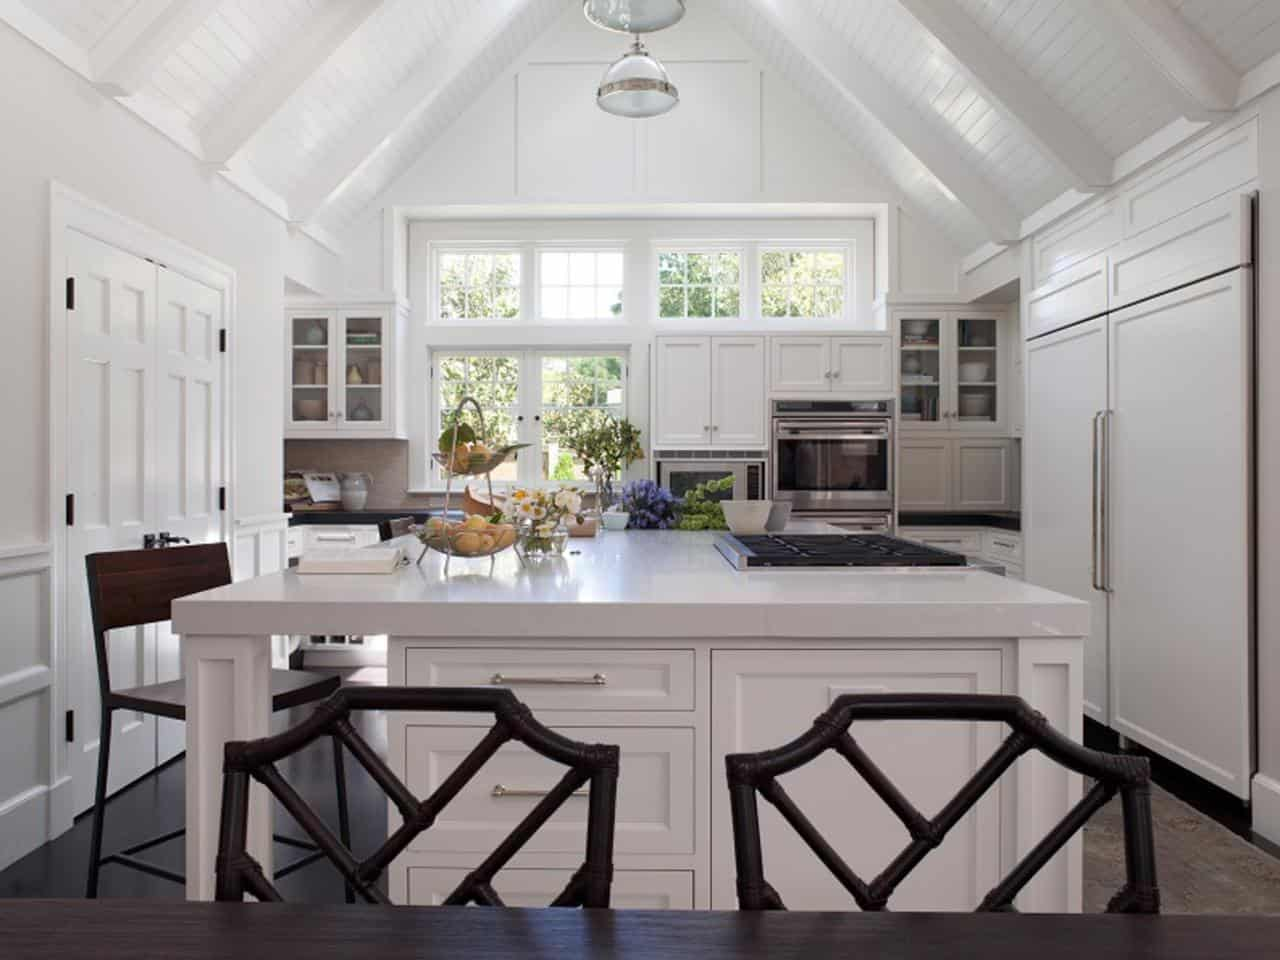 all-white wood cieling